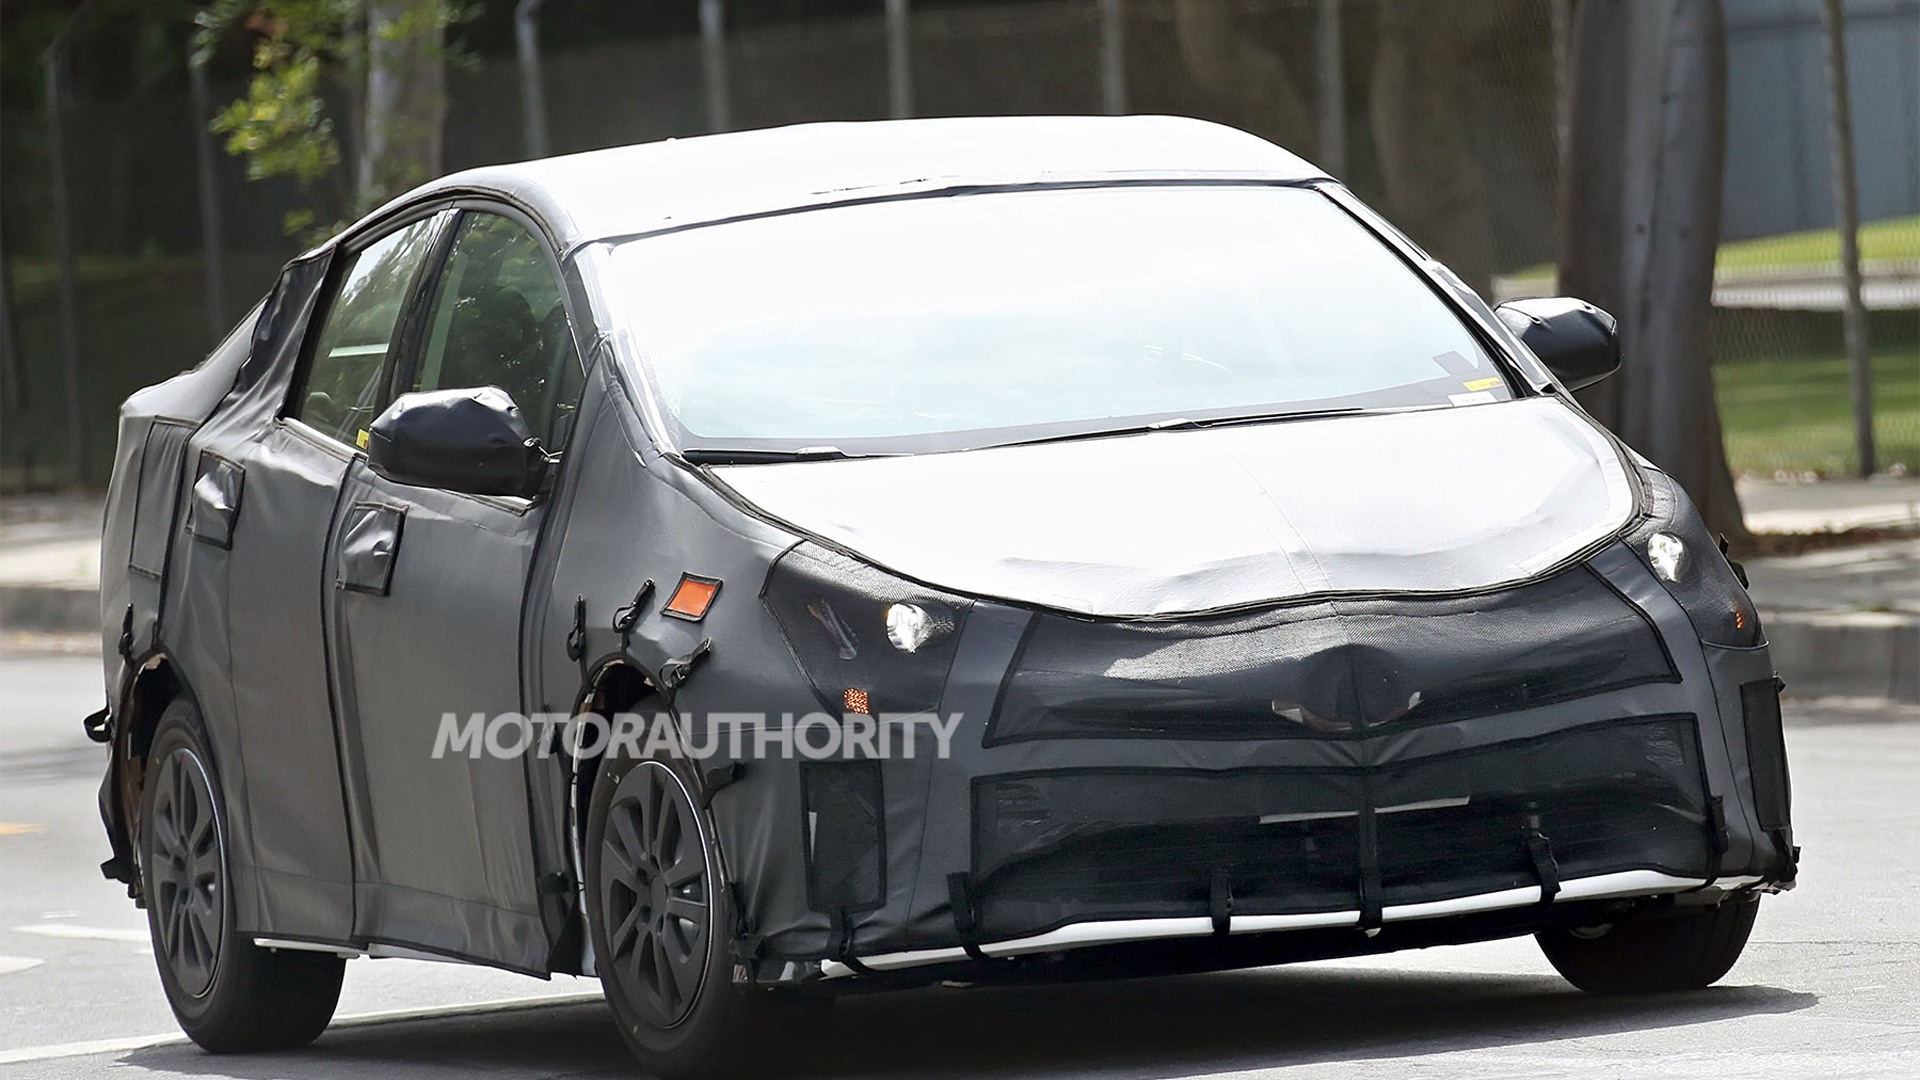 85 All New Spy Shots Toyota Prius Overview